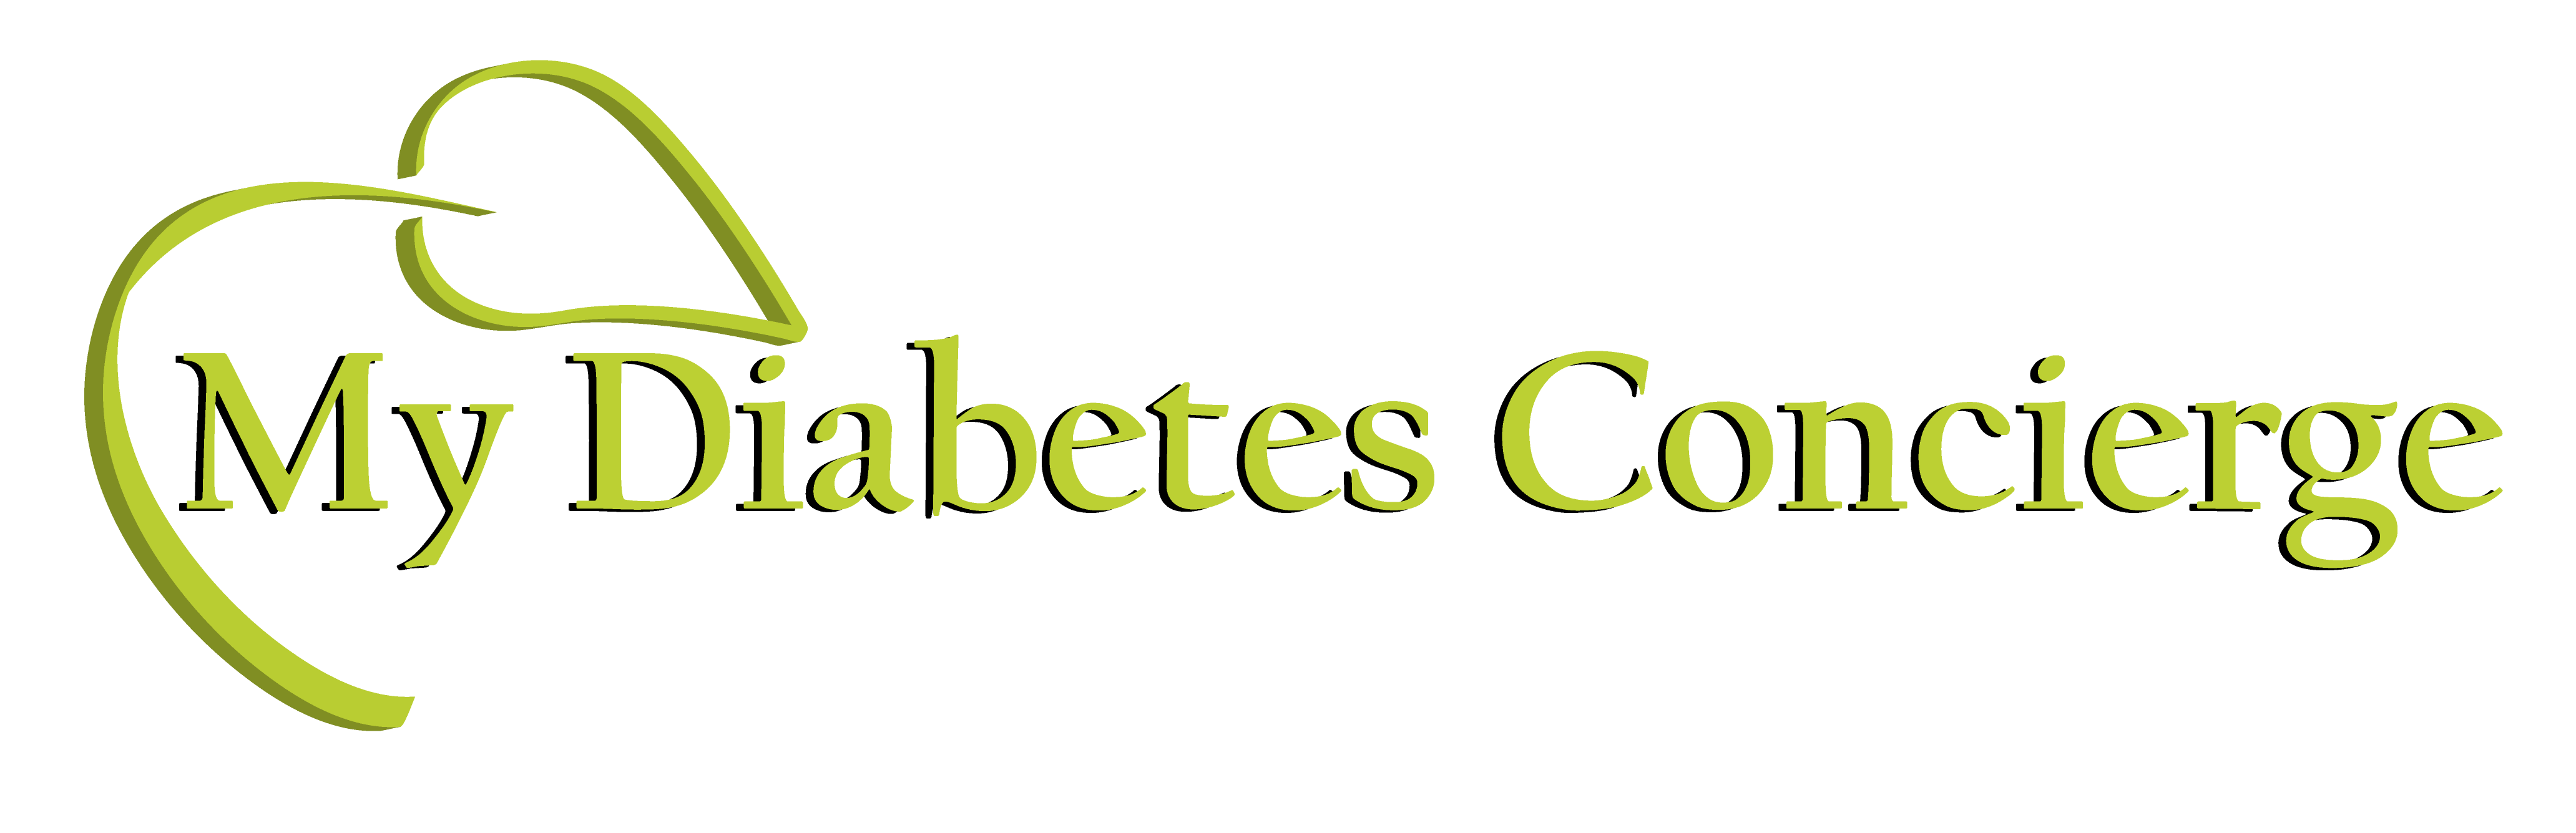 My Diabetes Concierge logo